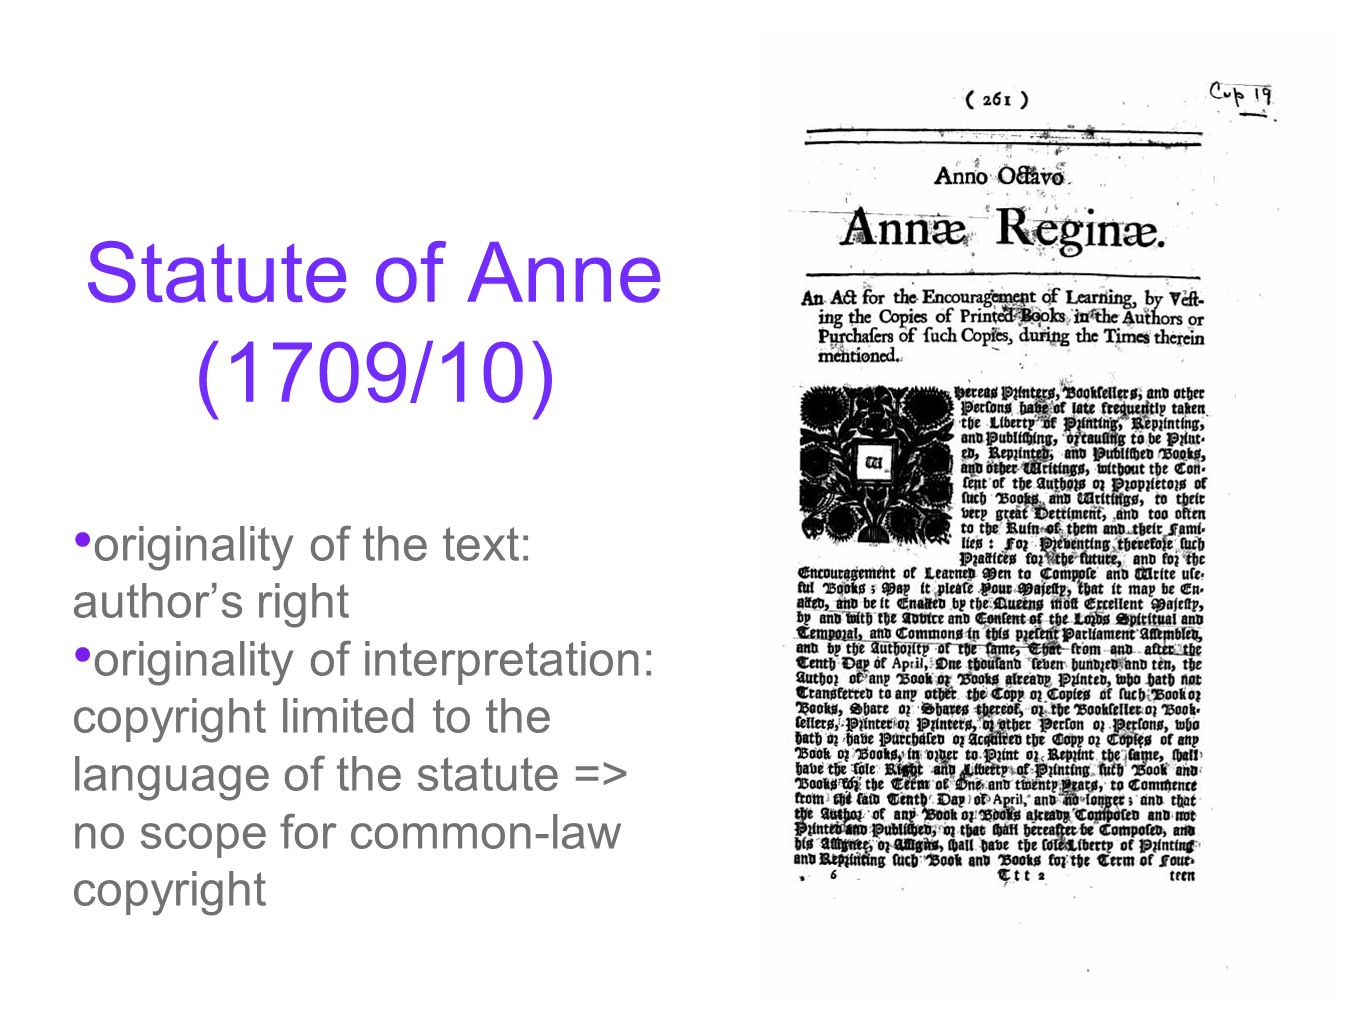 Statute of Anne (1709/10) originality of the text: author's right